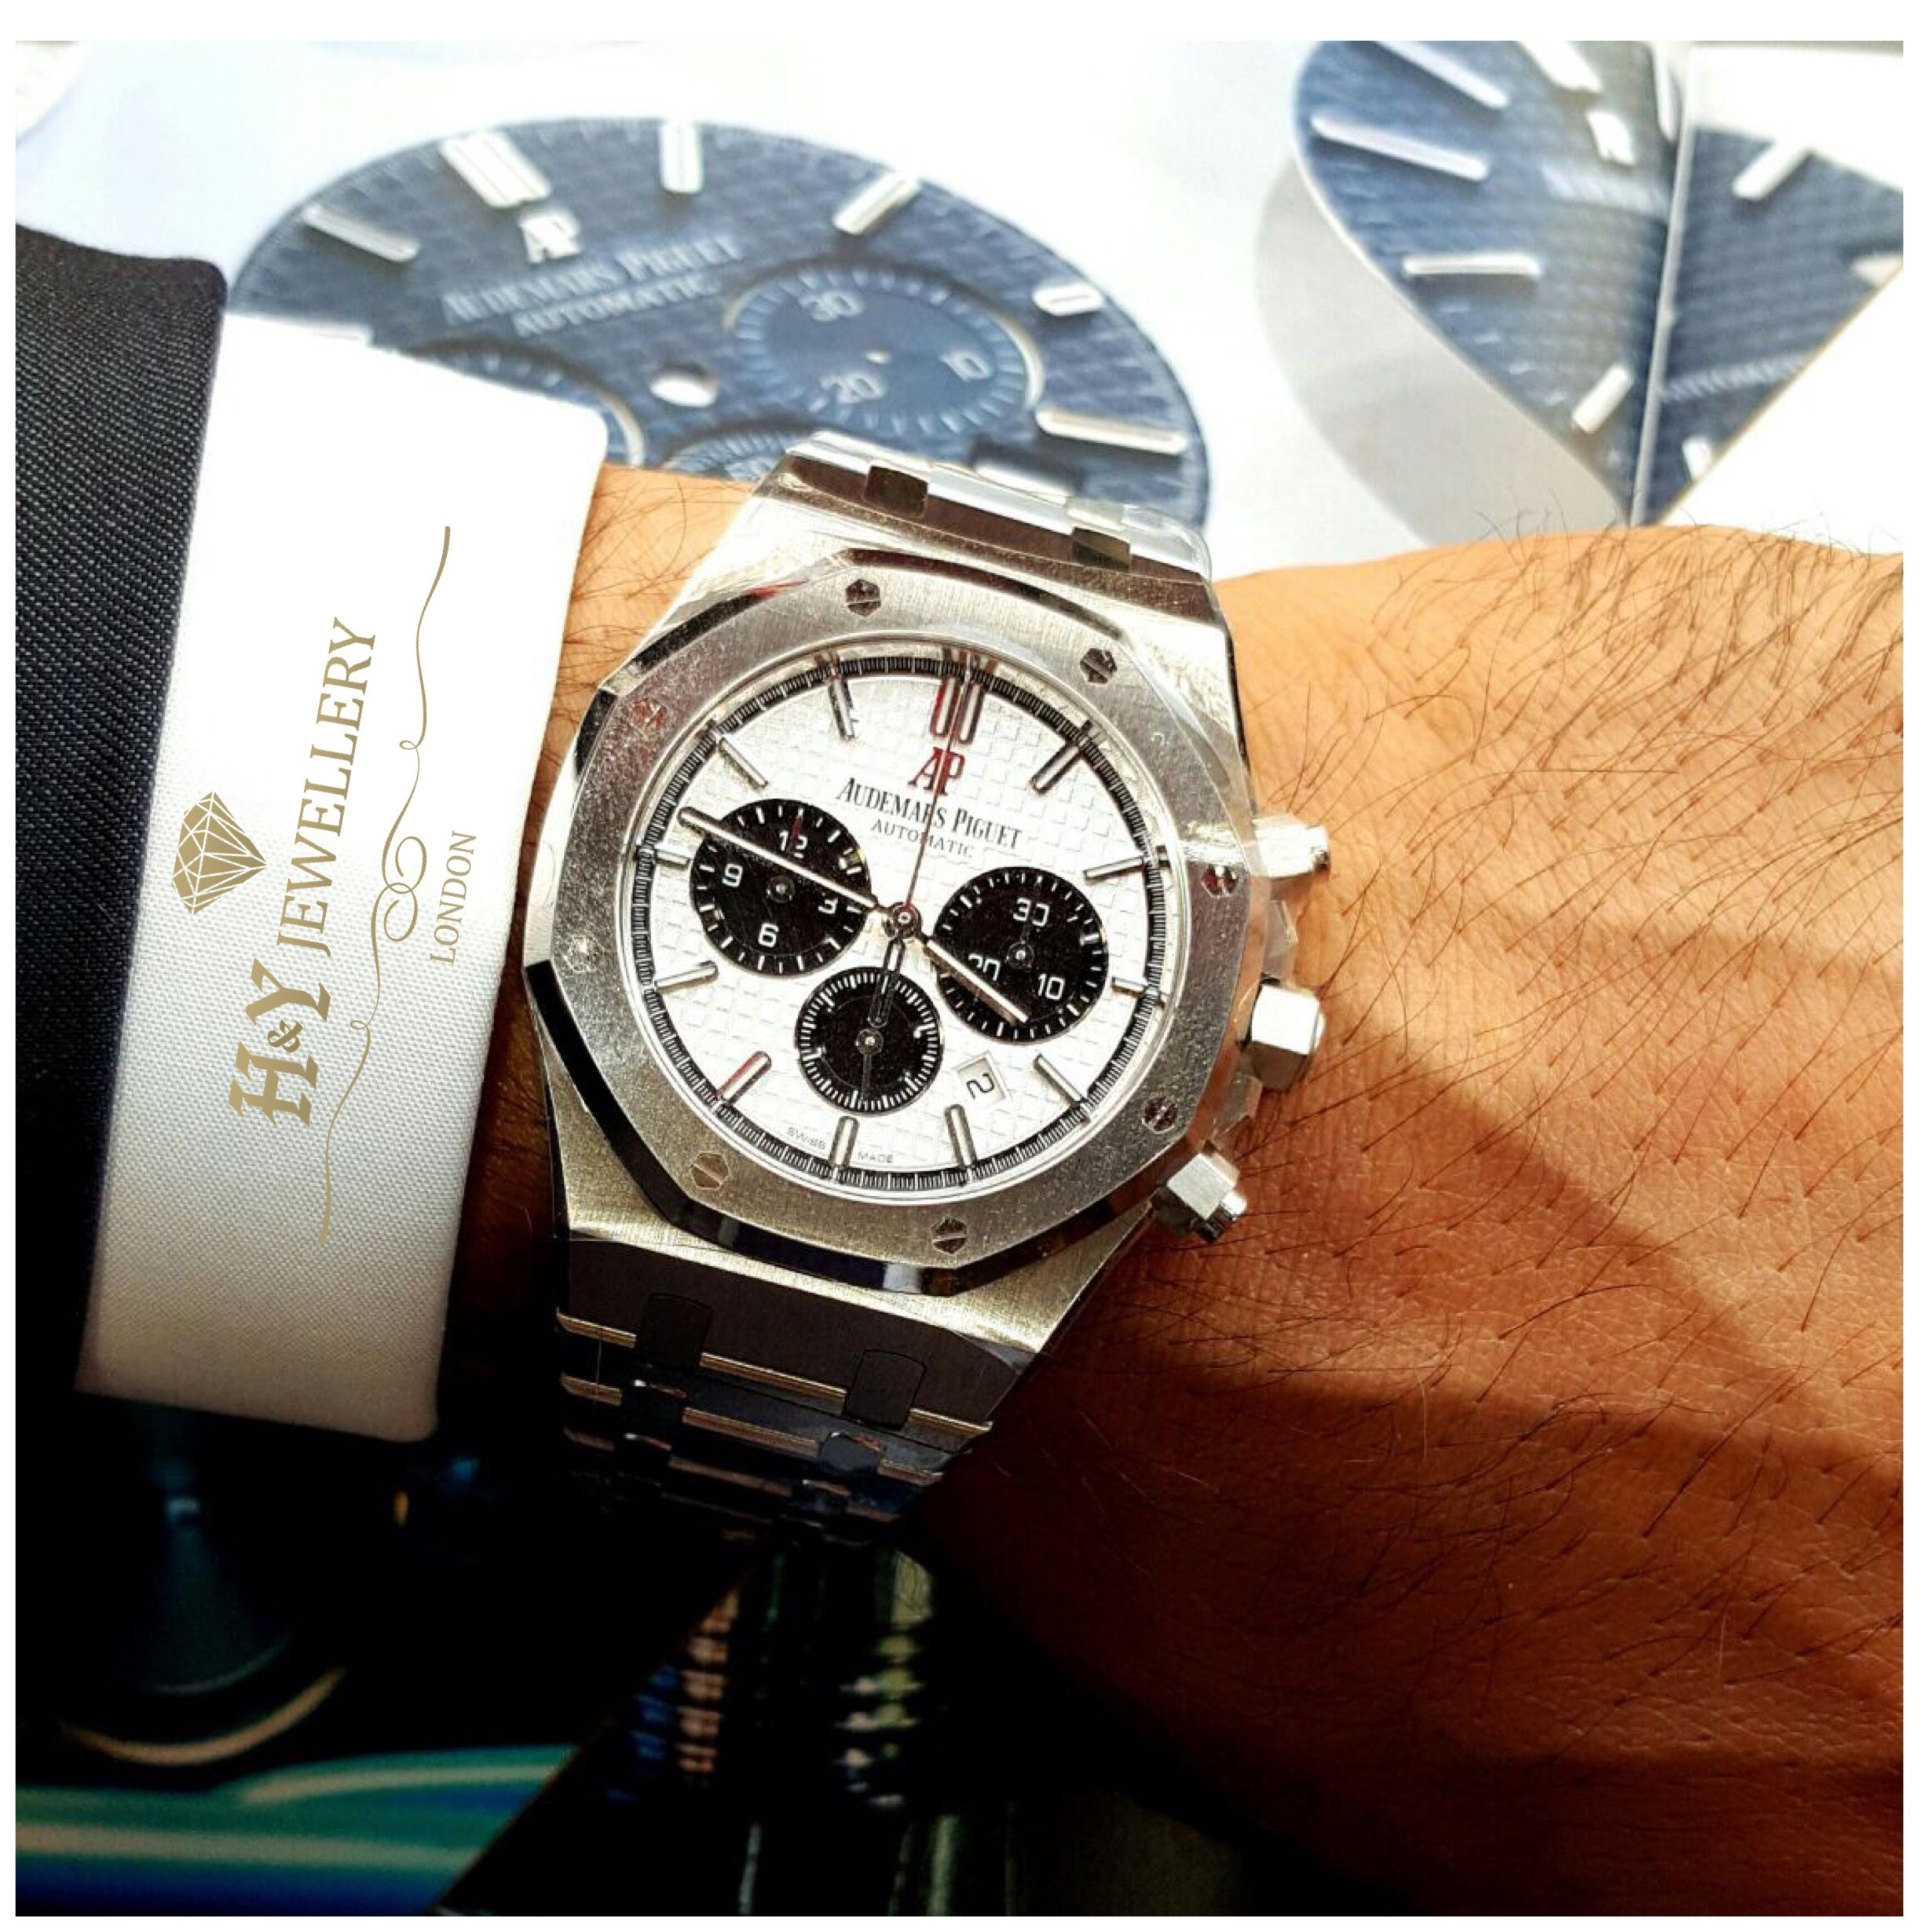 59ec0b82175 Audemars Piguet Royal Oak Chronograph Steel - Ref 26331ST.OO.1220ST.03  Novelty 2017 only at H Y Jewellery!